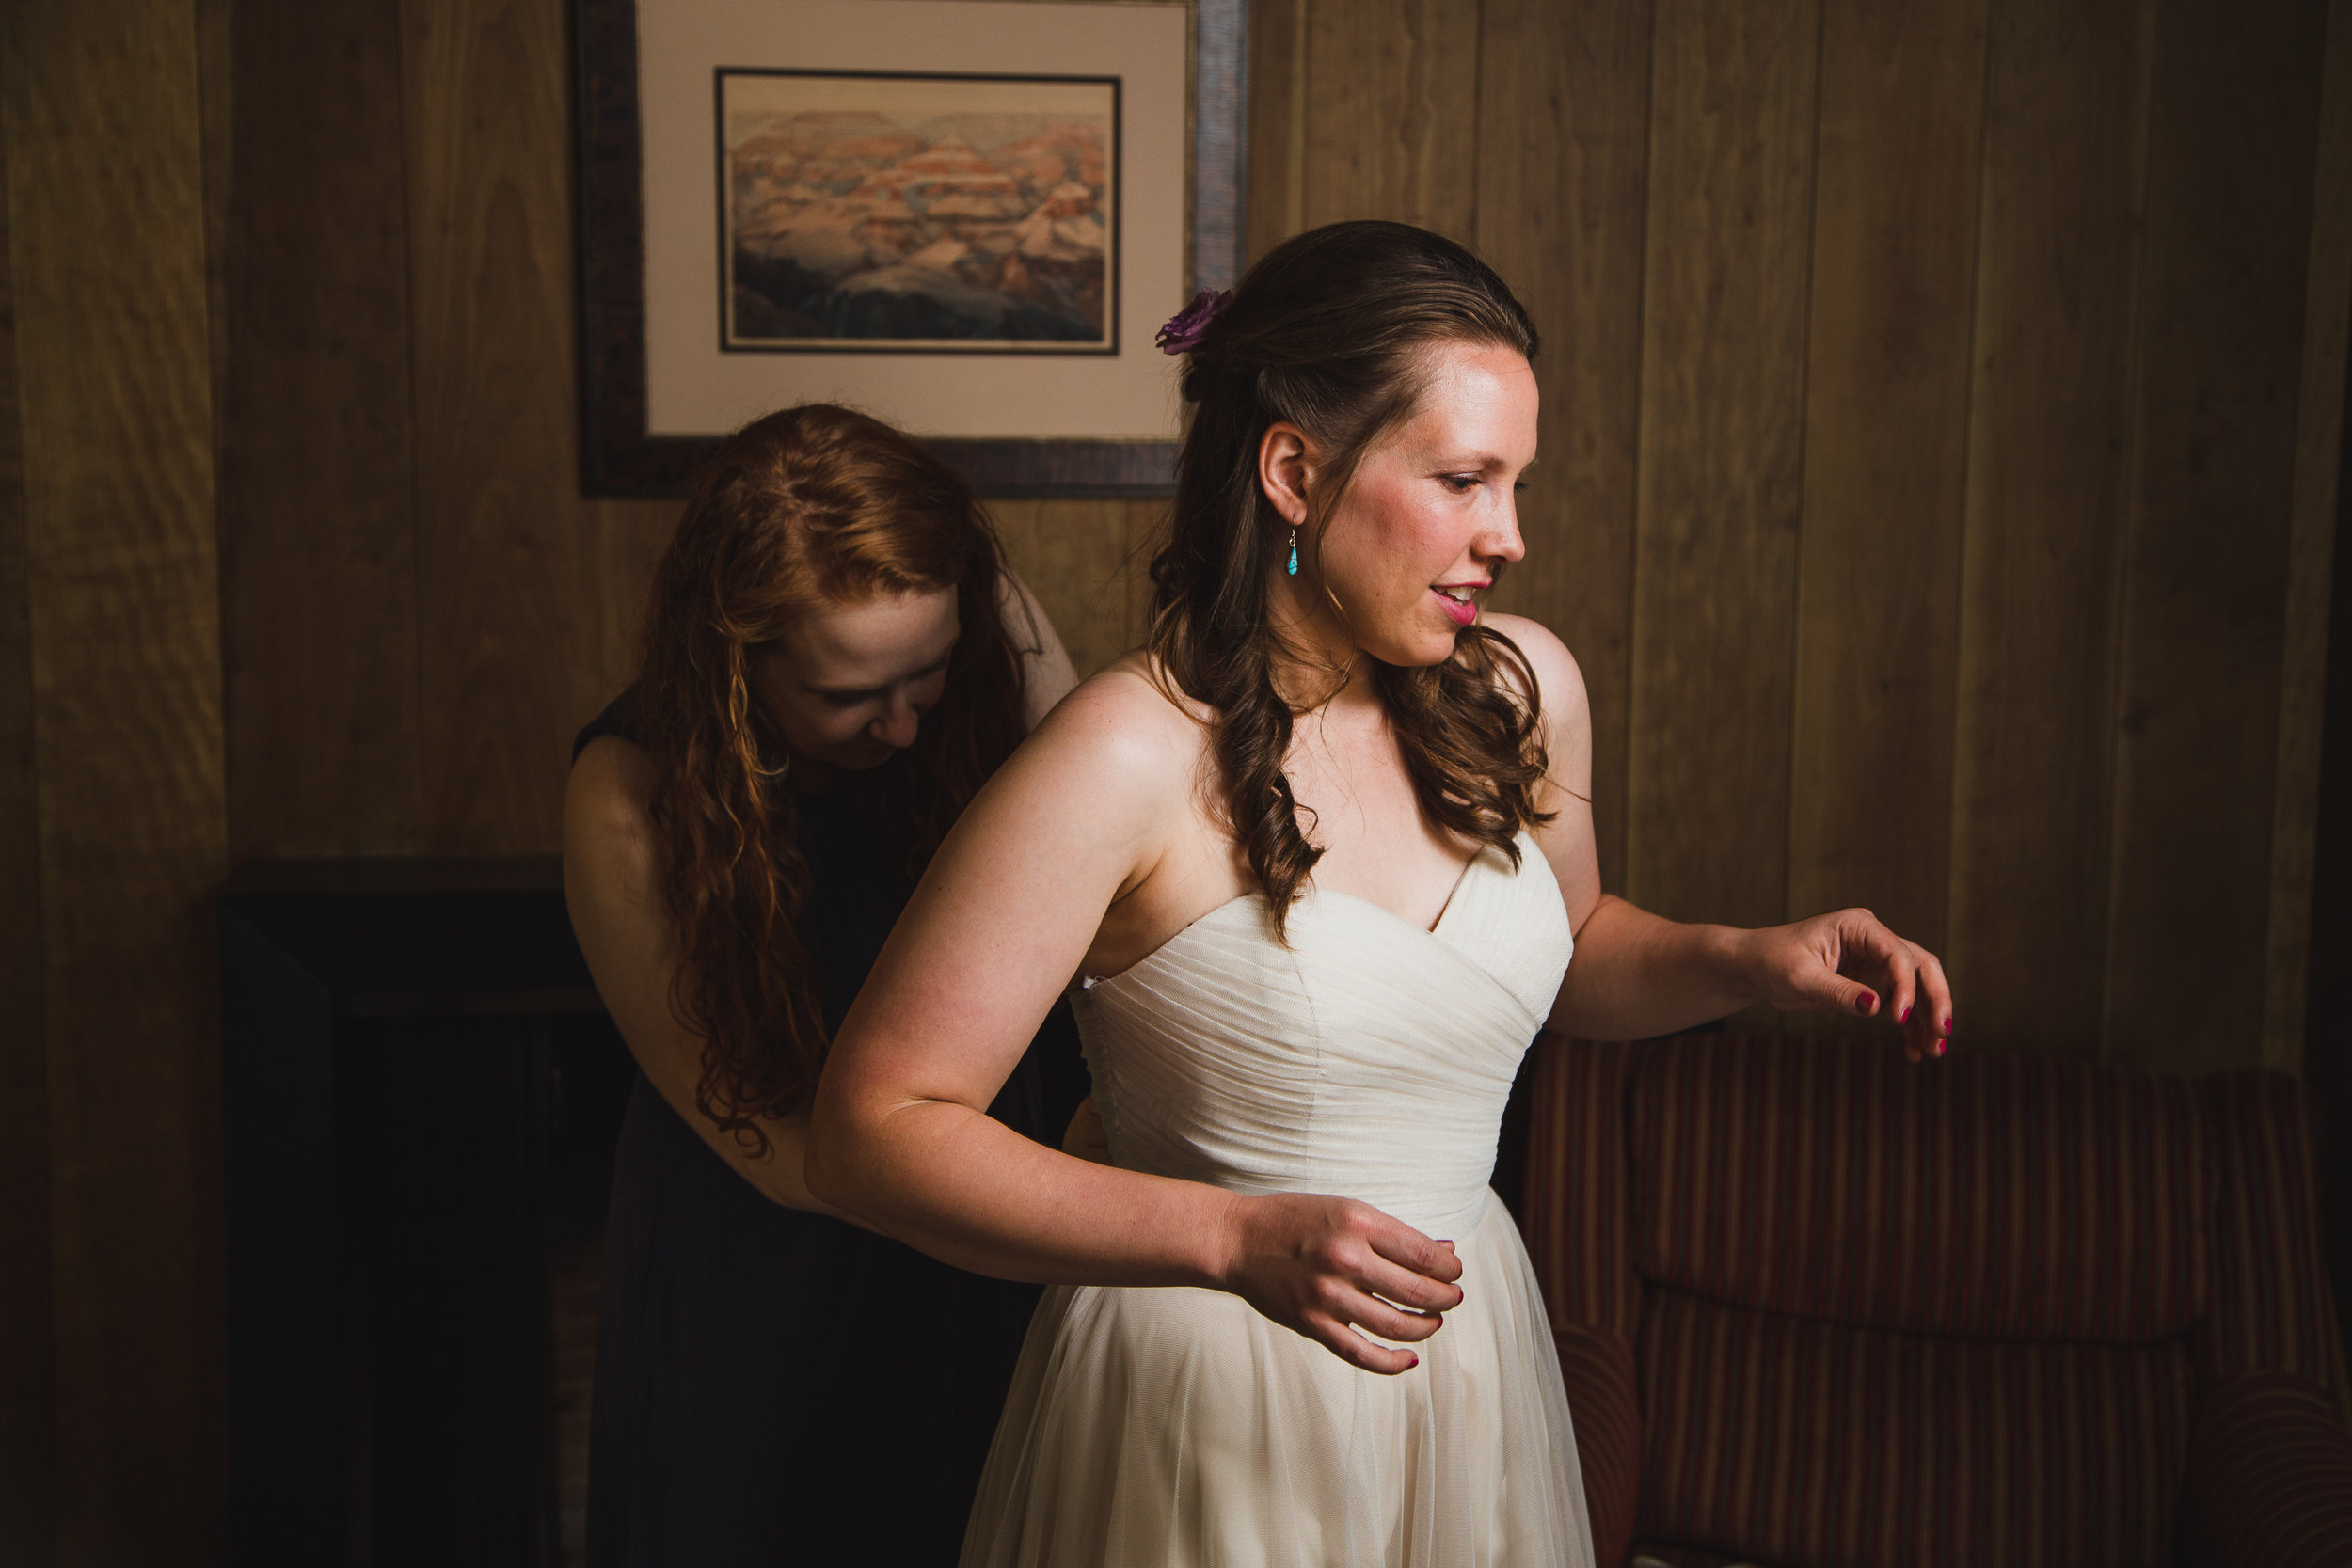 the-arboretum-at-flagstaff-wedding-3.jpg